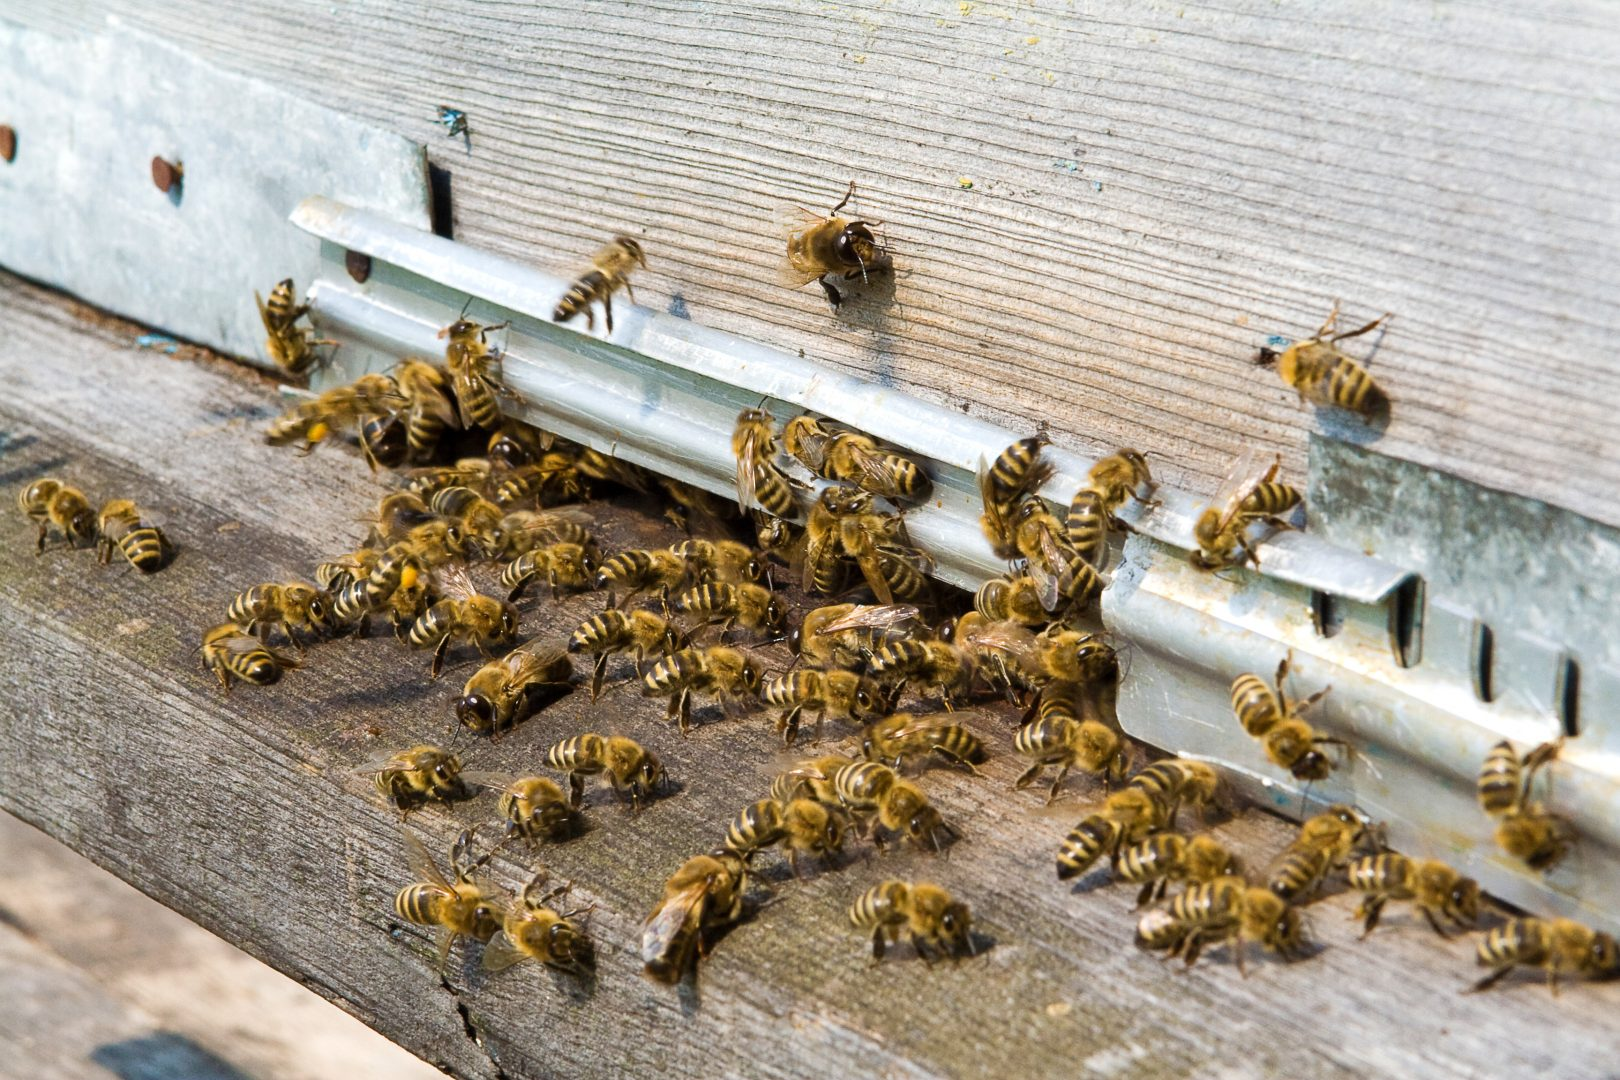 Bees crawling into building